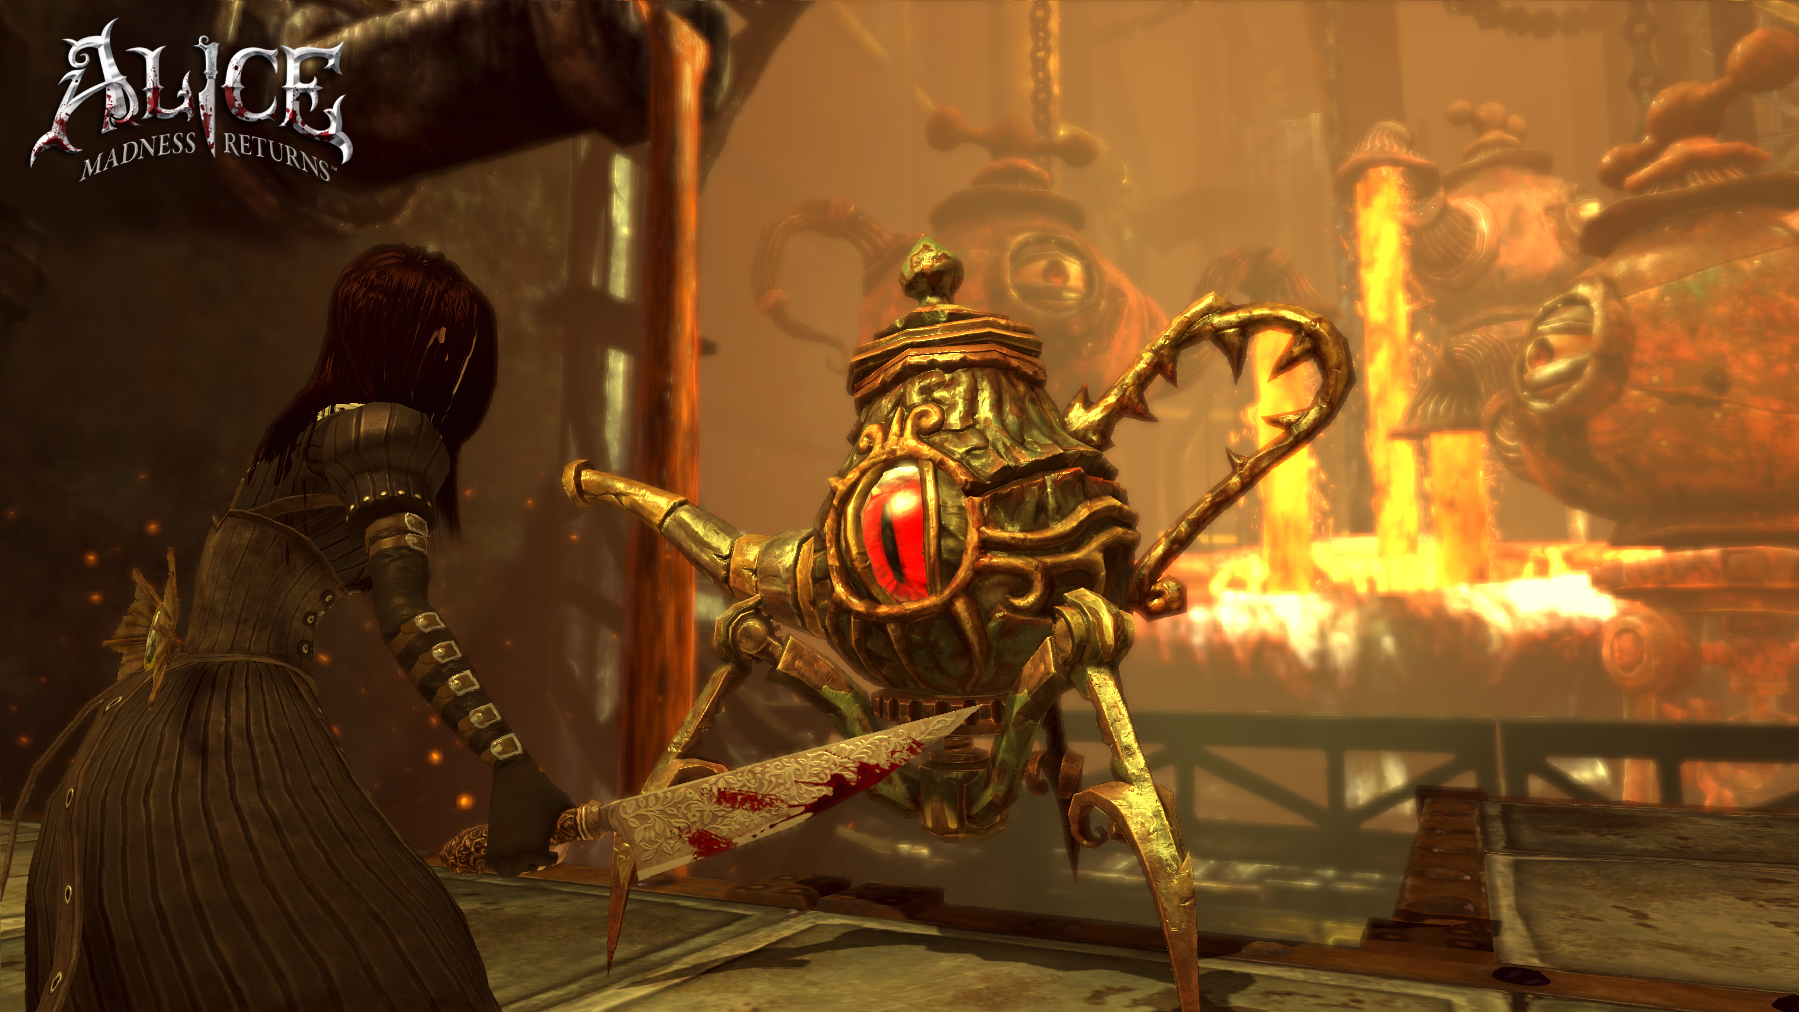 Media asset in full size related to 3dfxzone.it news item entitled as follows: Da Electronic Arts nuovi screenshots di Alice: Madness Returns   Image Name: news14971_4.jpg